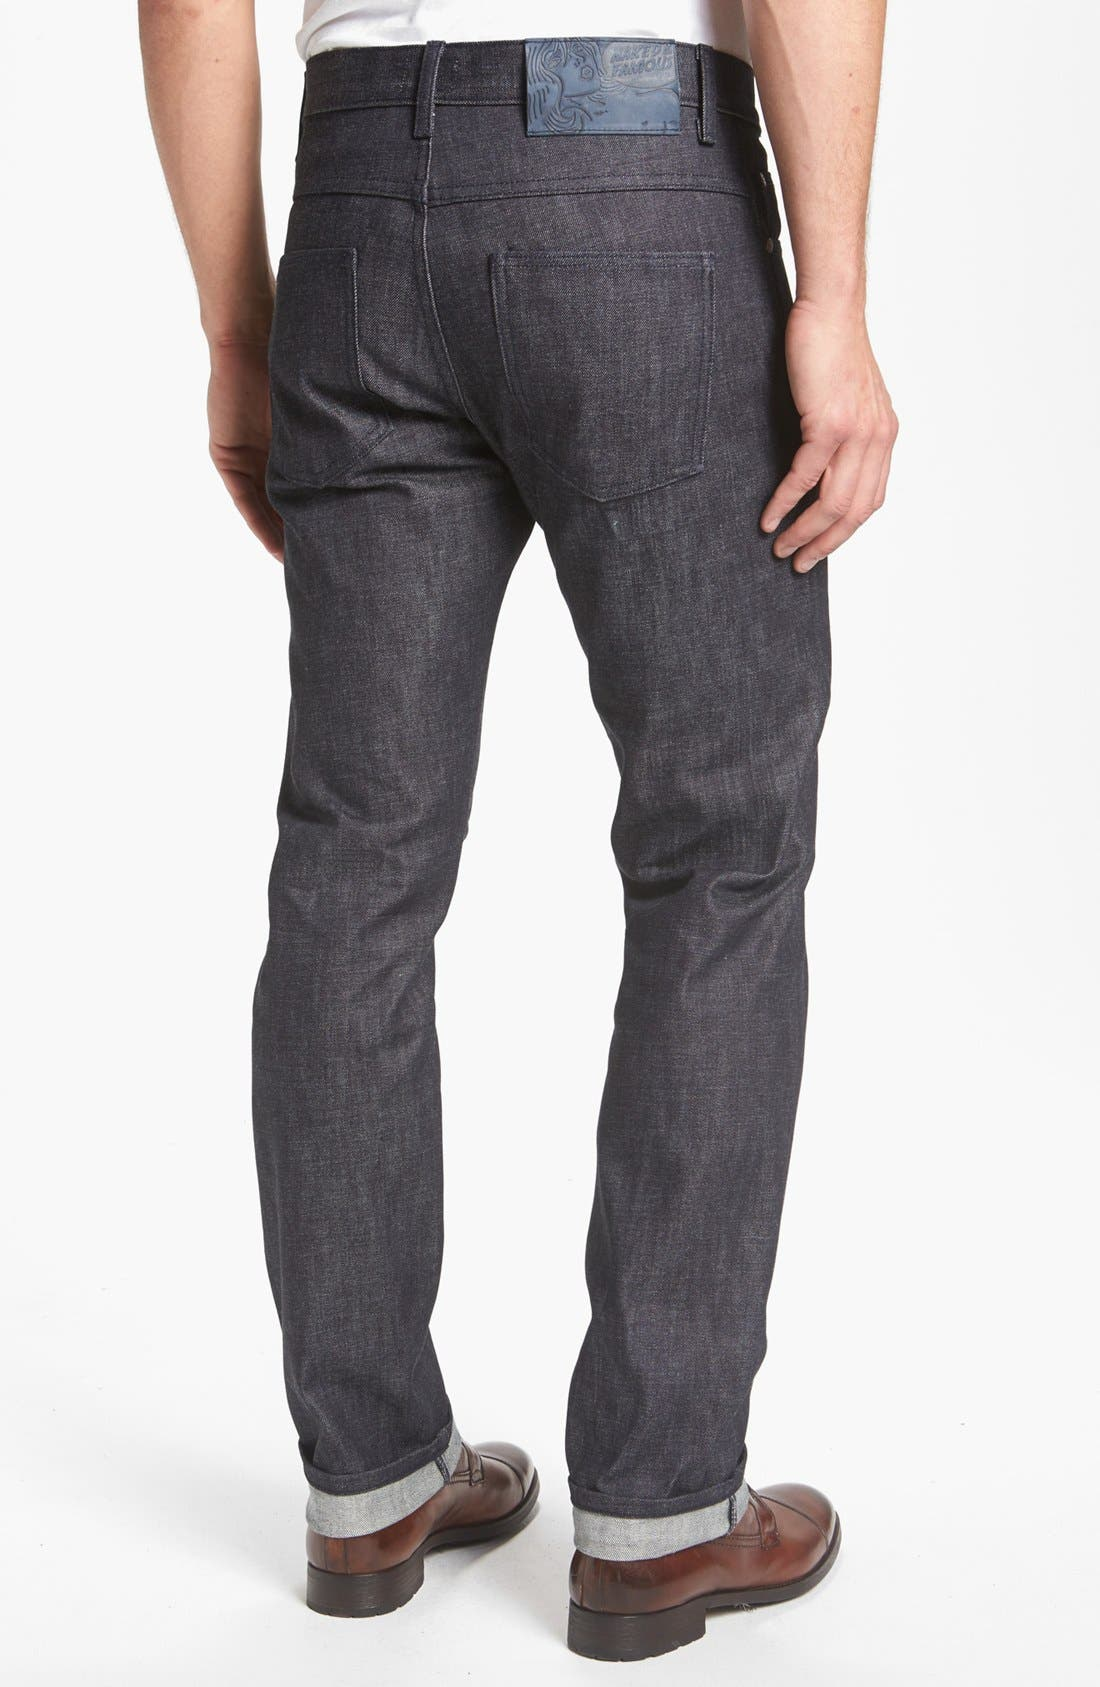 Main Image - Naked & Famous Denim 'Slim Guy' Straight Leg Raw Jeans (Natural Denim) (Online Only)